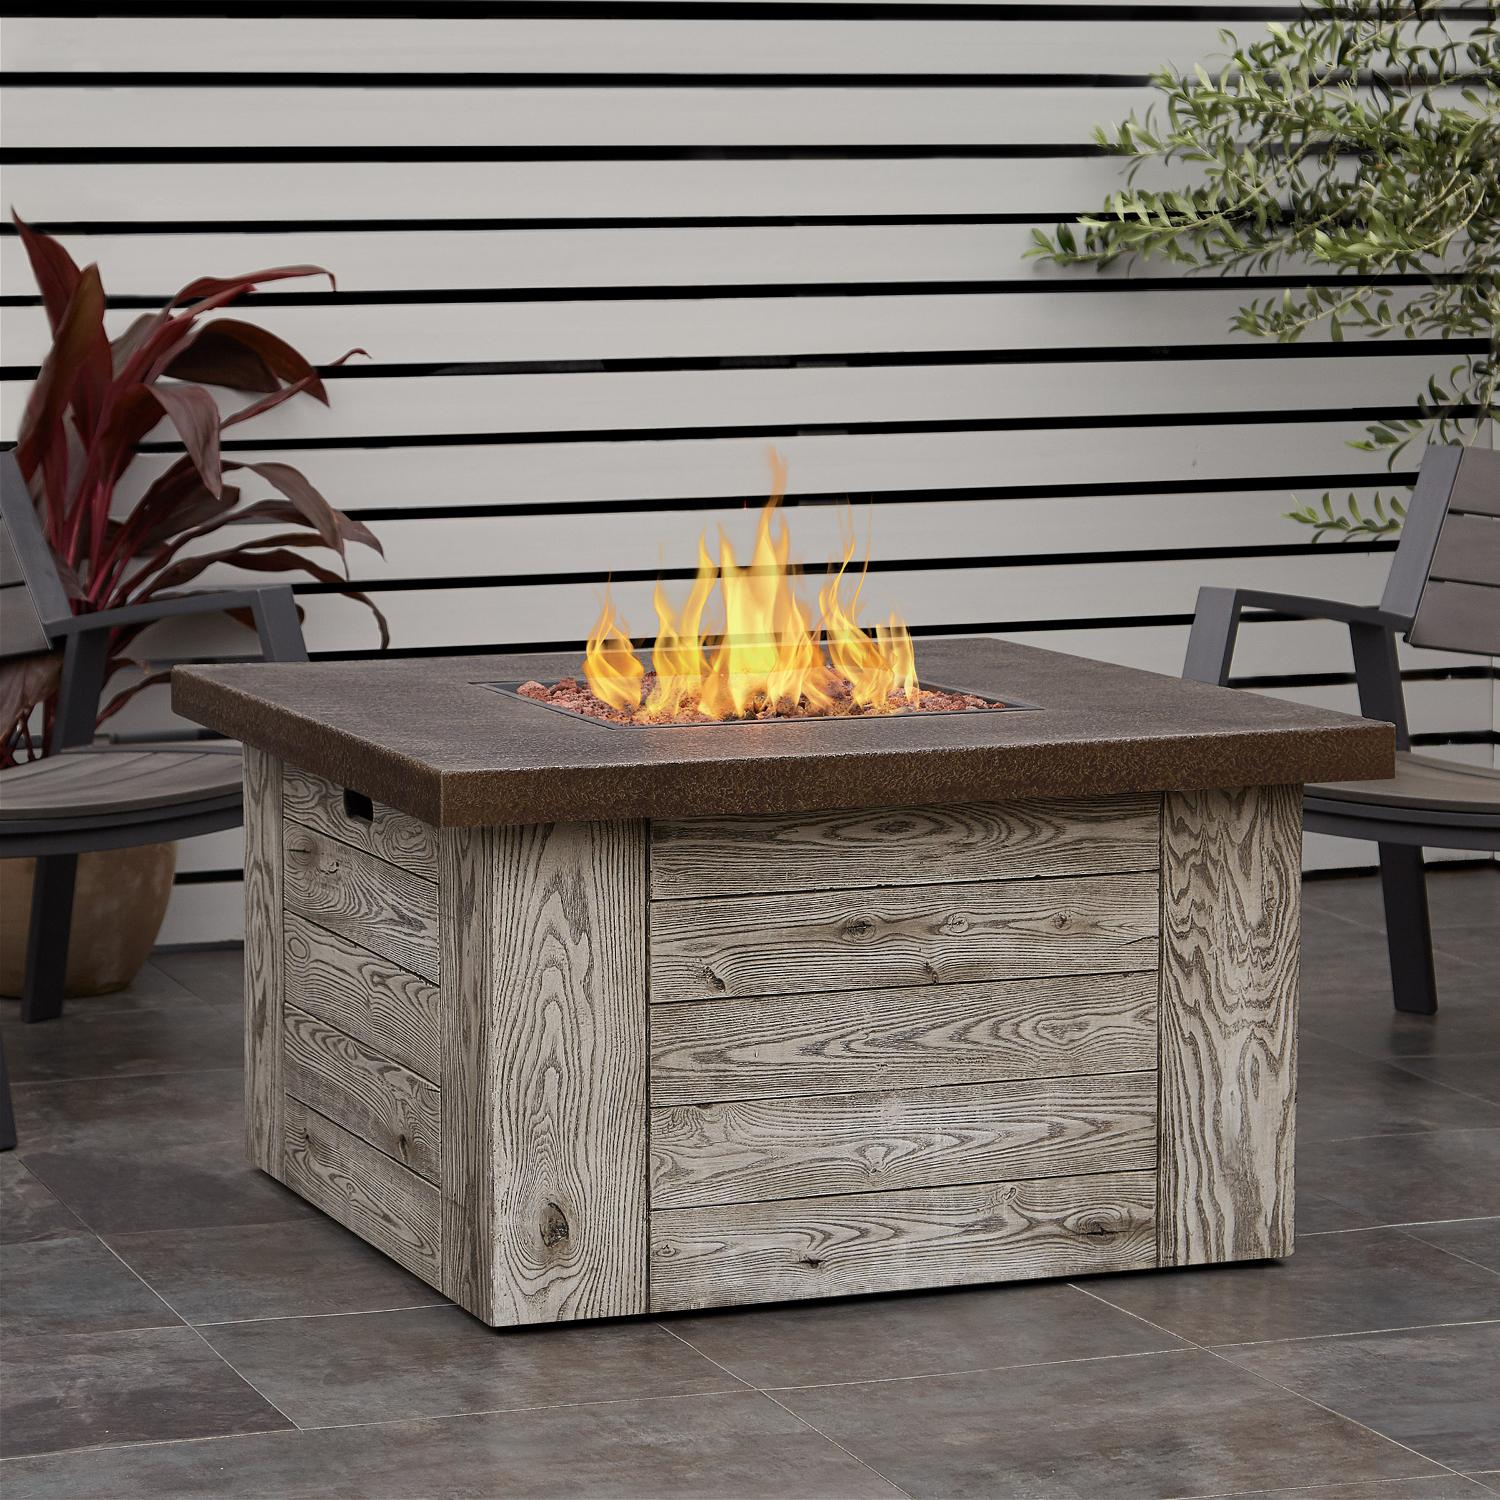 Real Flame Forest Ridge 42 Inch Square Propane Fire Pit Table Weathered Gray C1600lp Wgr Bbqguys In 2020 Fire Table Fire Pit Table Propane Fire Pit Table